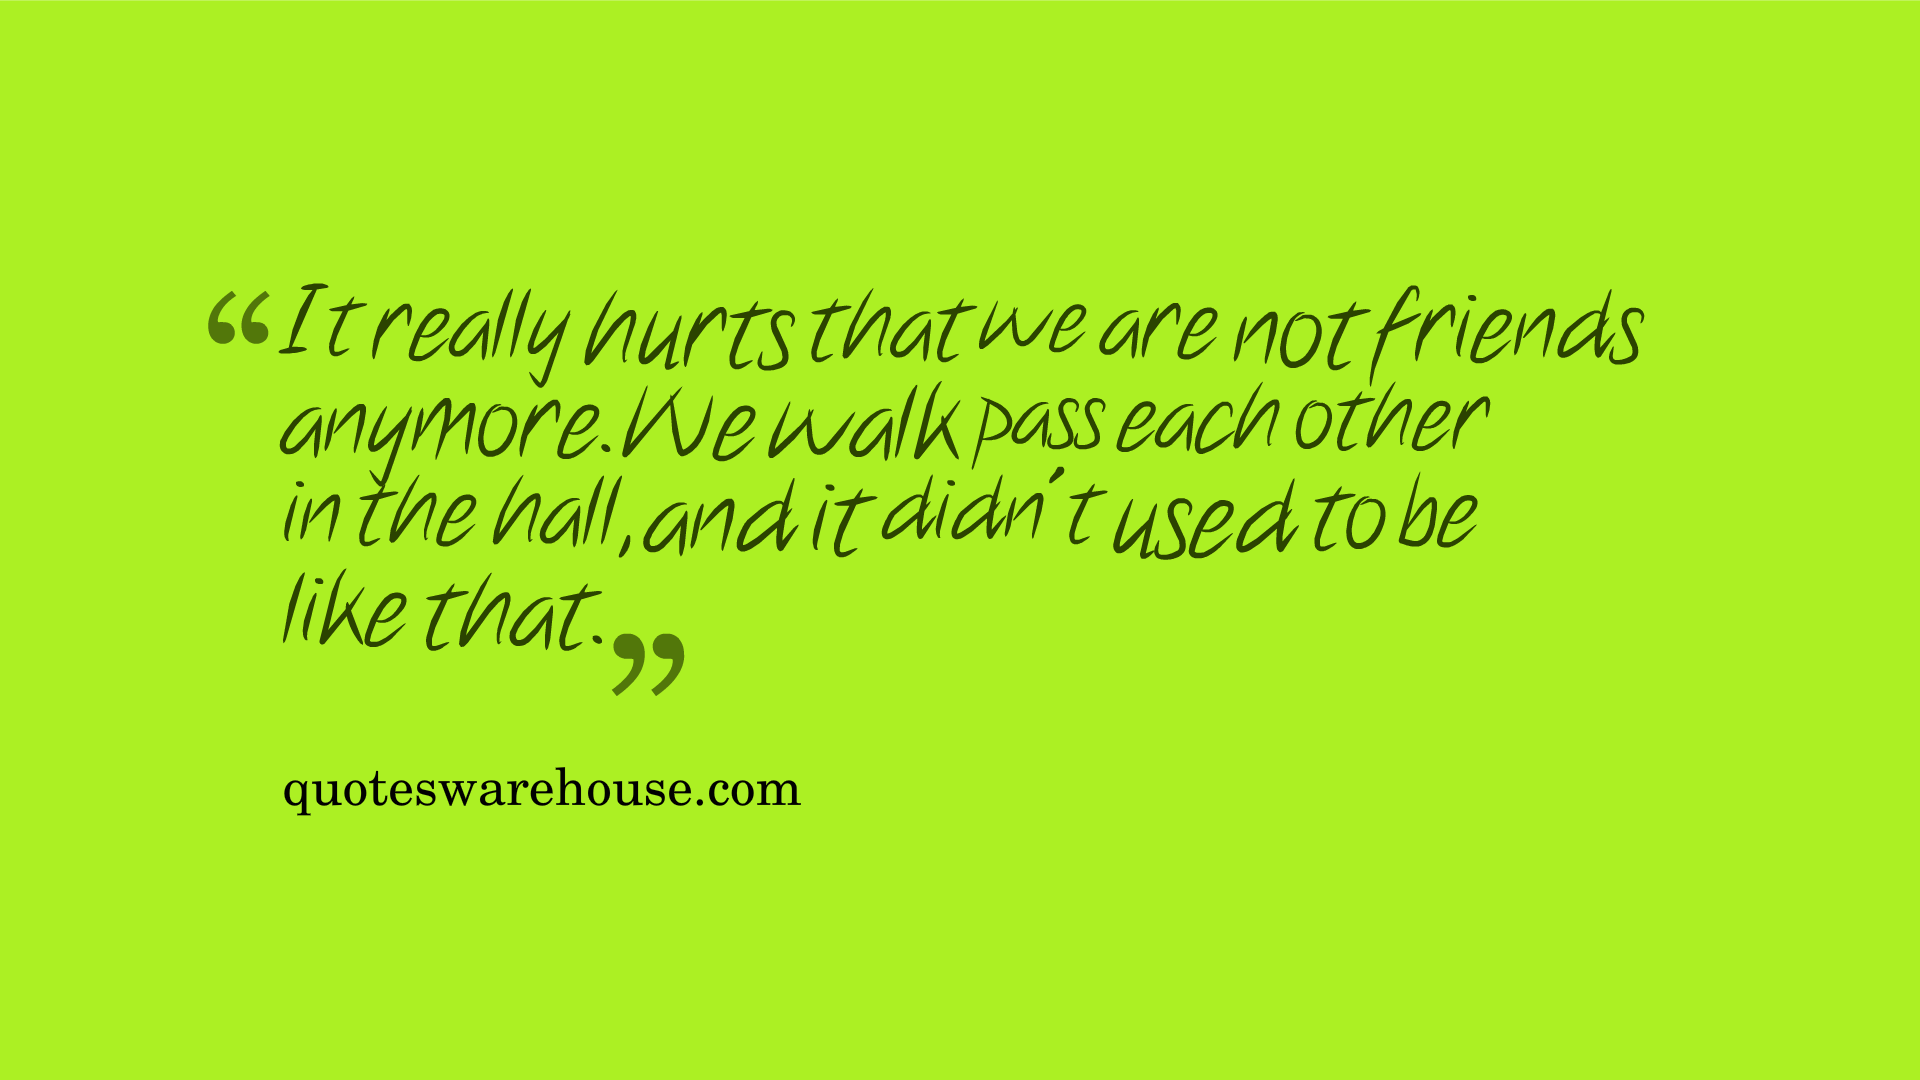 Sad Quotes About Lost Friendship Quotesgram: Sad Friendship Replacement Quotes. QuotesGram